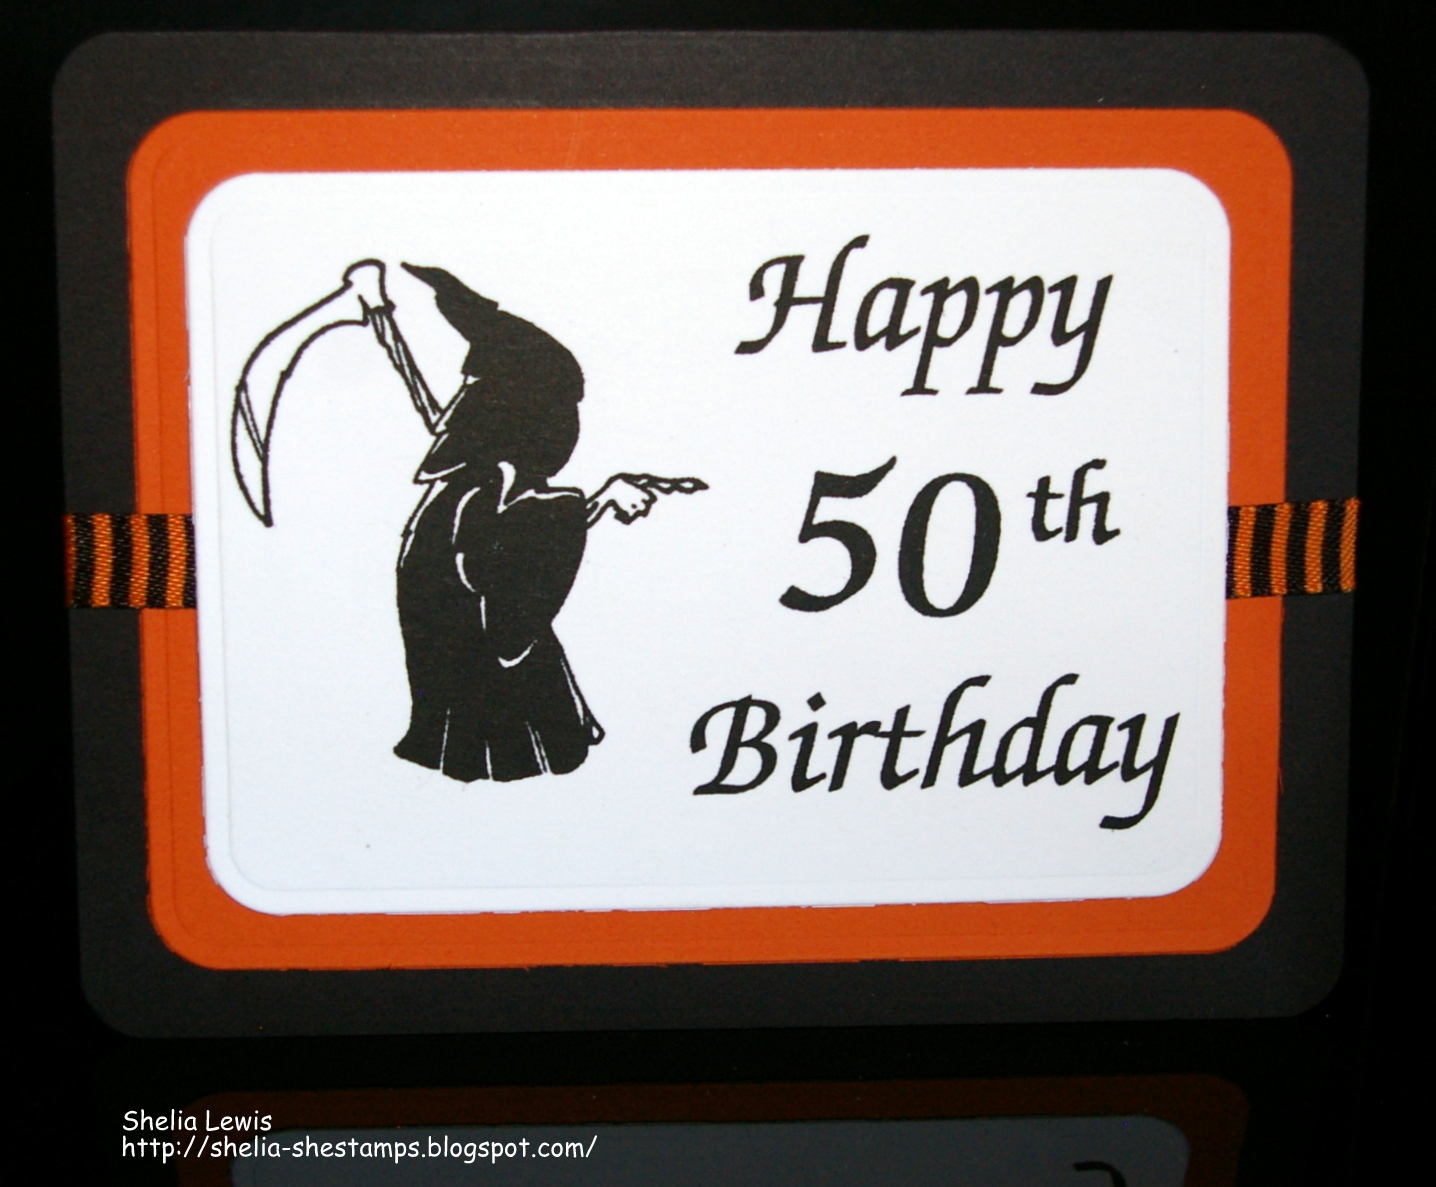 Drs designs rubber stamps happy 50th when i saw drs designs new grim reaper image 963g i knew i had to use it to make a birthday card for my friend bookmarktalkfo Image collections